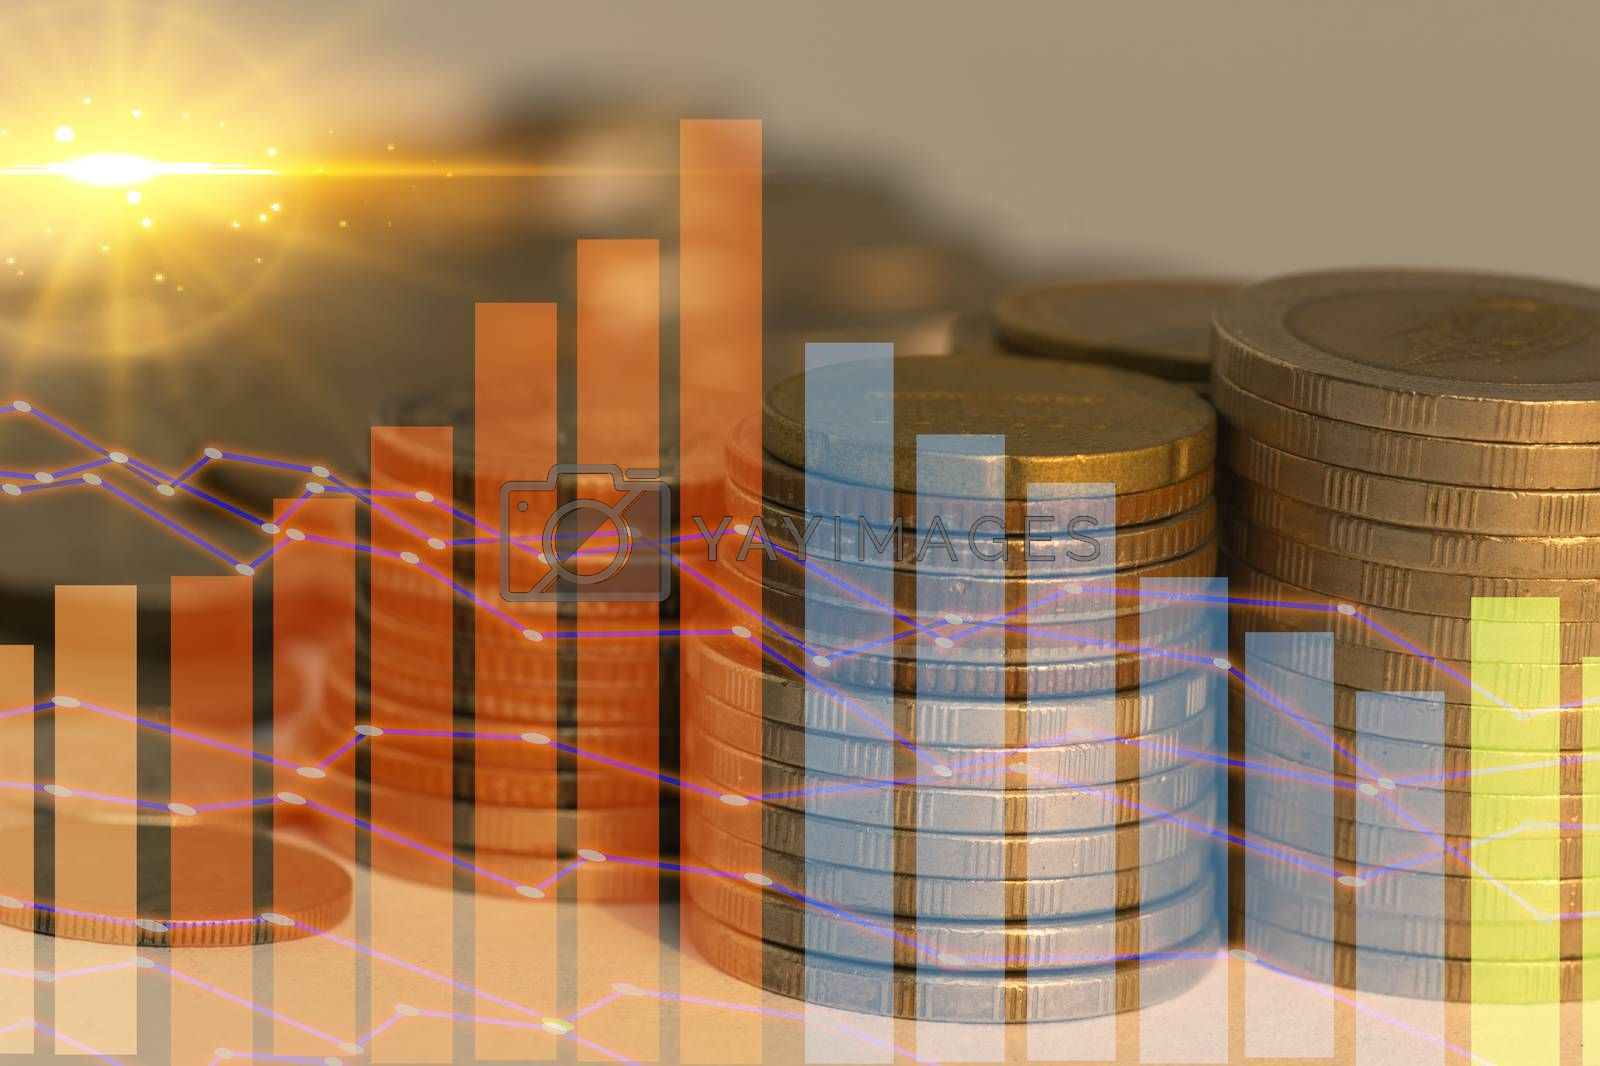 Abstract stacked coin ideas report investment and savings financial valuation.